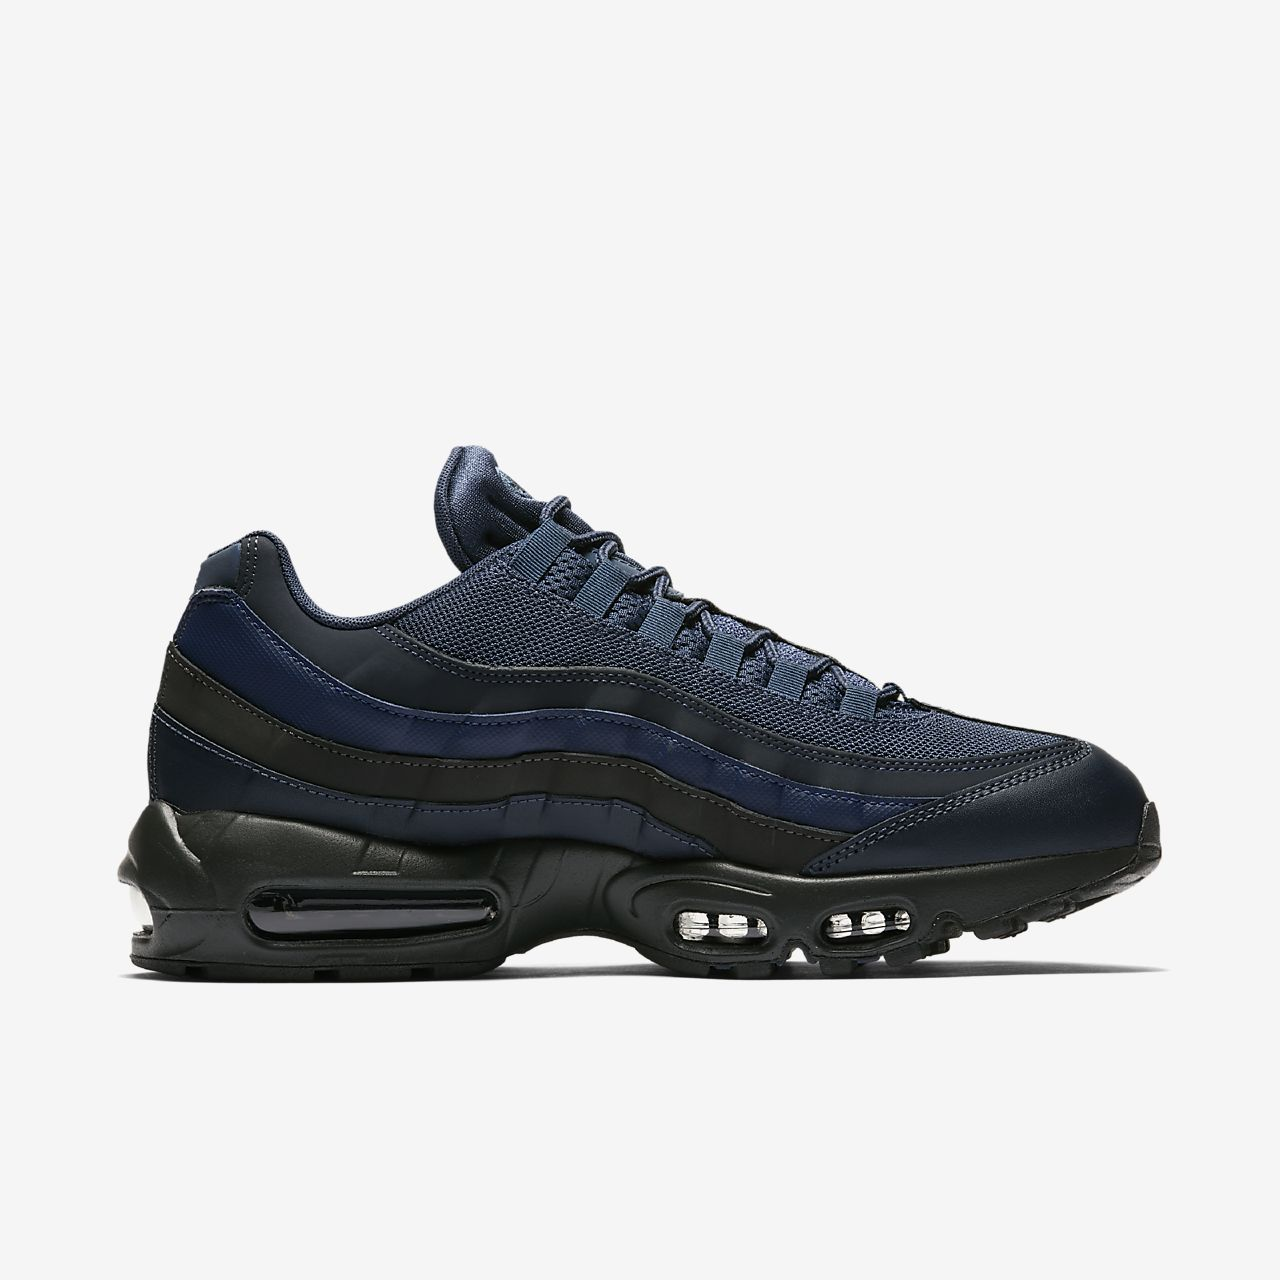 wholesale dealer eee96 f733a ... Chaussure Nike Air Max 95 Essential pour Homme